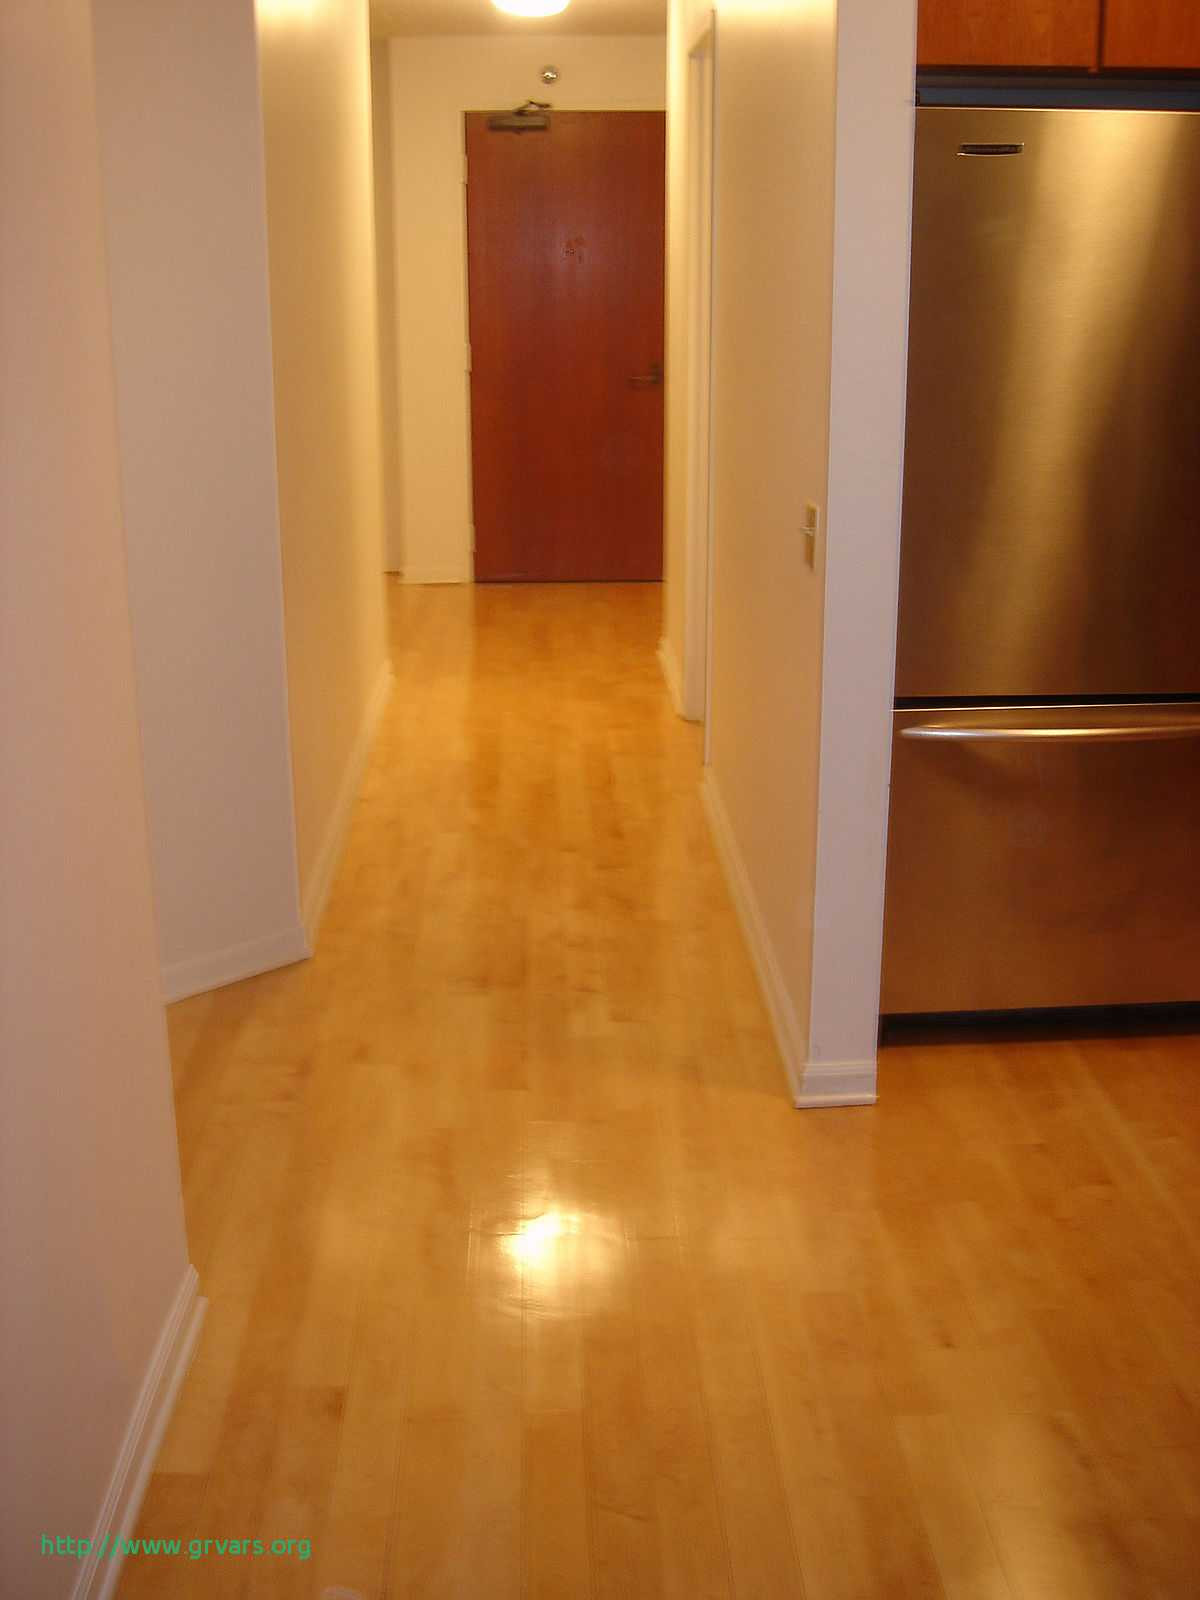 How to Clean Bruce Engineered Hardwood Floors Of 20 Impressionnant where to Buy Bruce Hardwood Floor Cleaner Ideas Blog Pertaining to Full Size Of Bedroom Delightful Discount Hardwood Flooring 8 1200px Discount Hardwood Flooring